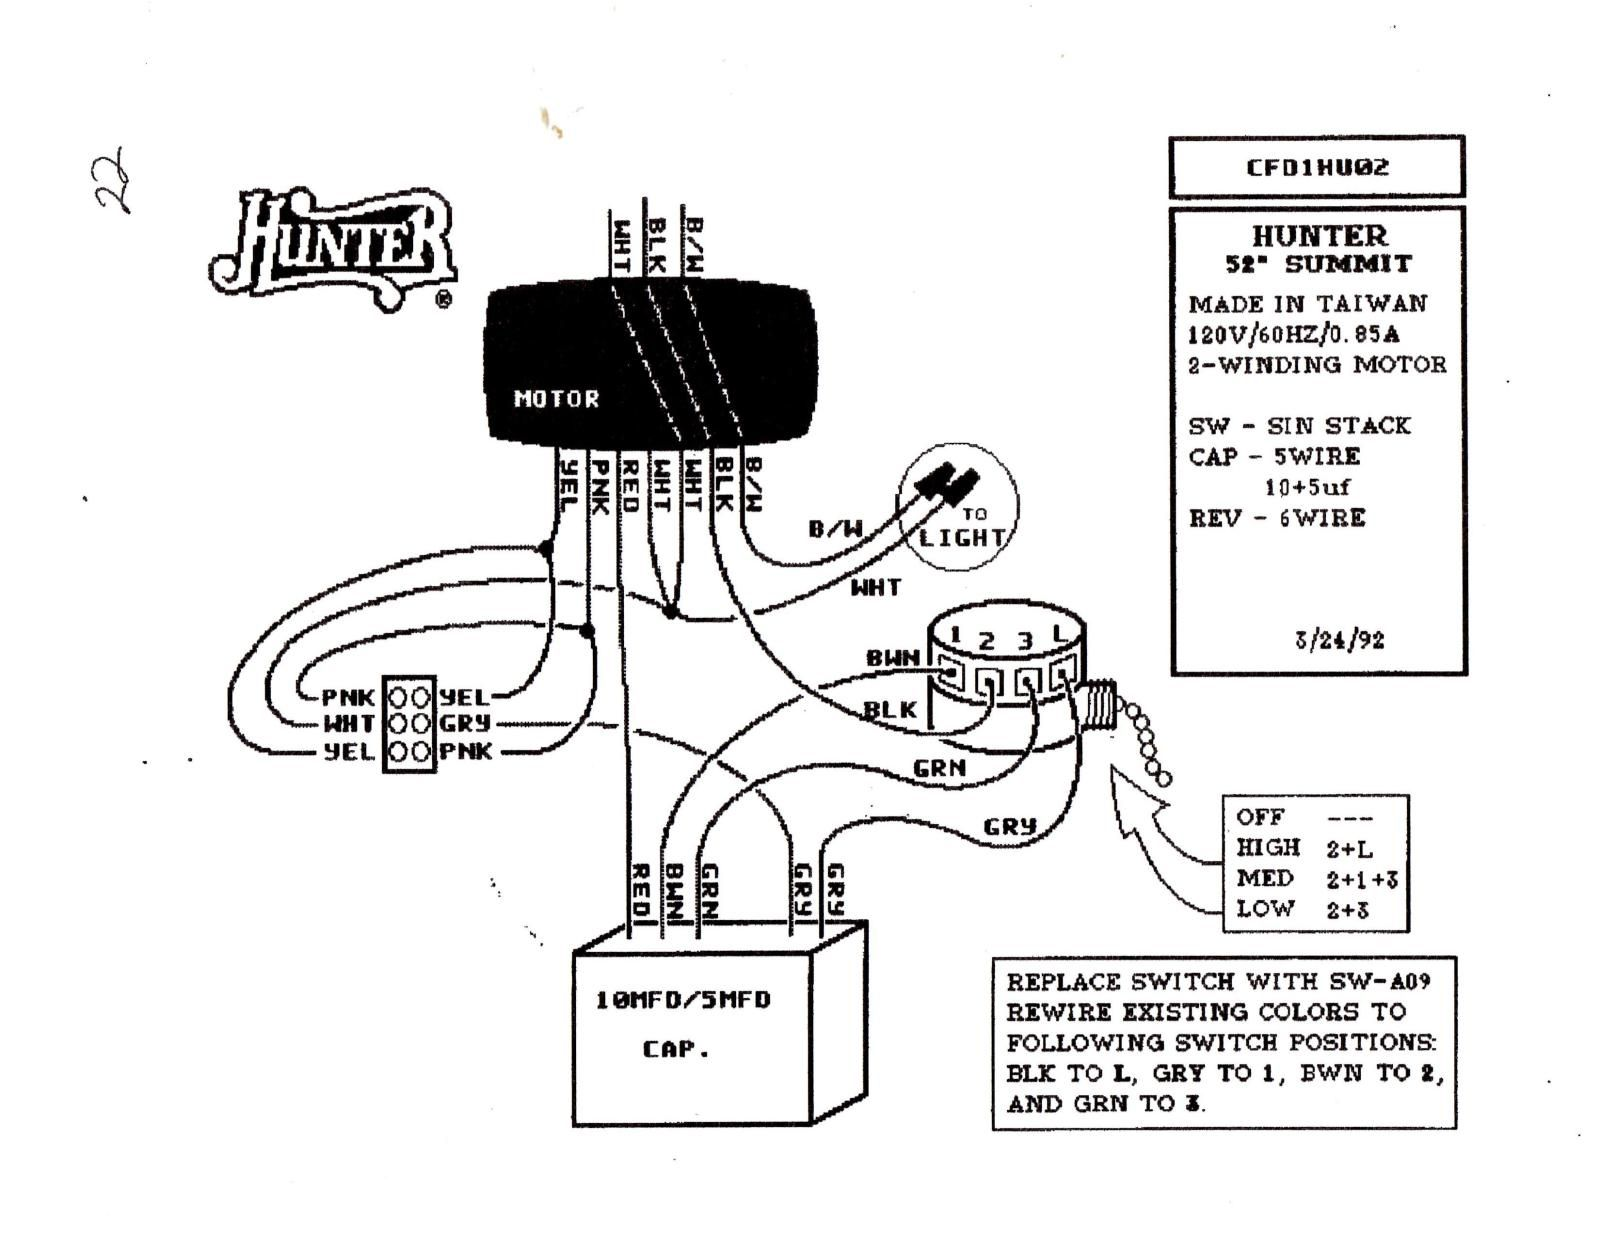 hunter ceiling fan speed switch wiring diagram switch ceiling hunter thermostat wiring diagram hunter ceiling fan [ 1600 x 1236 Pixel ]